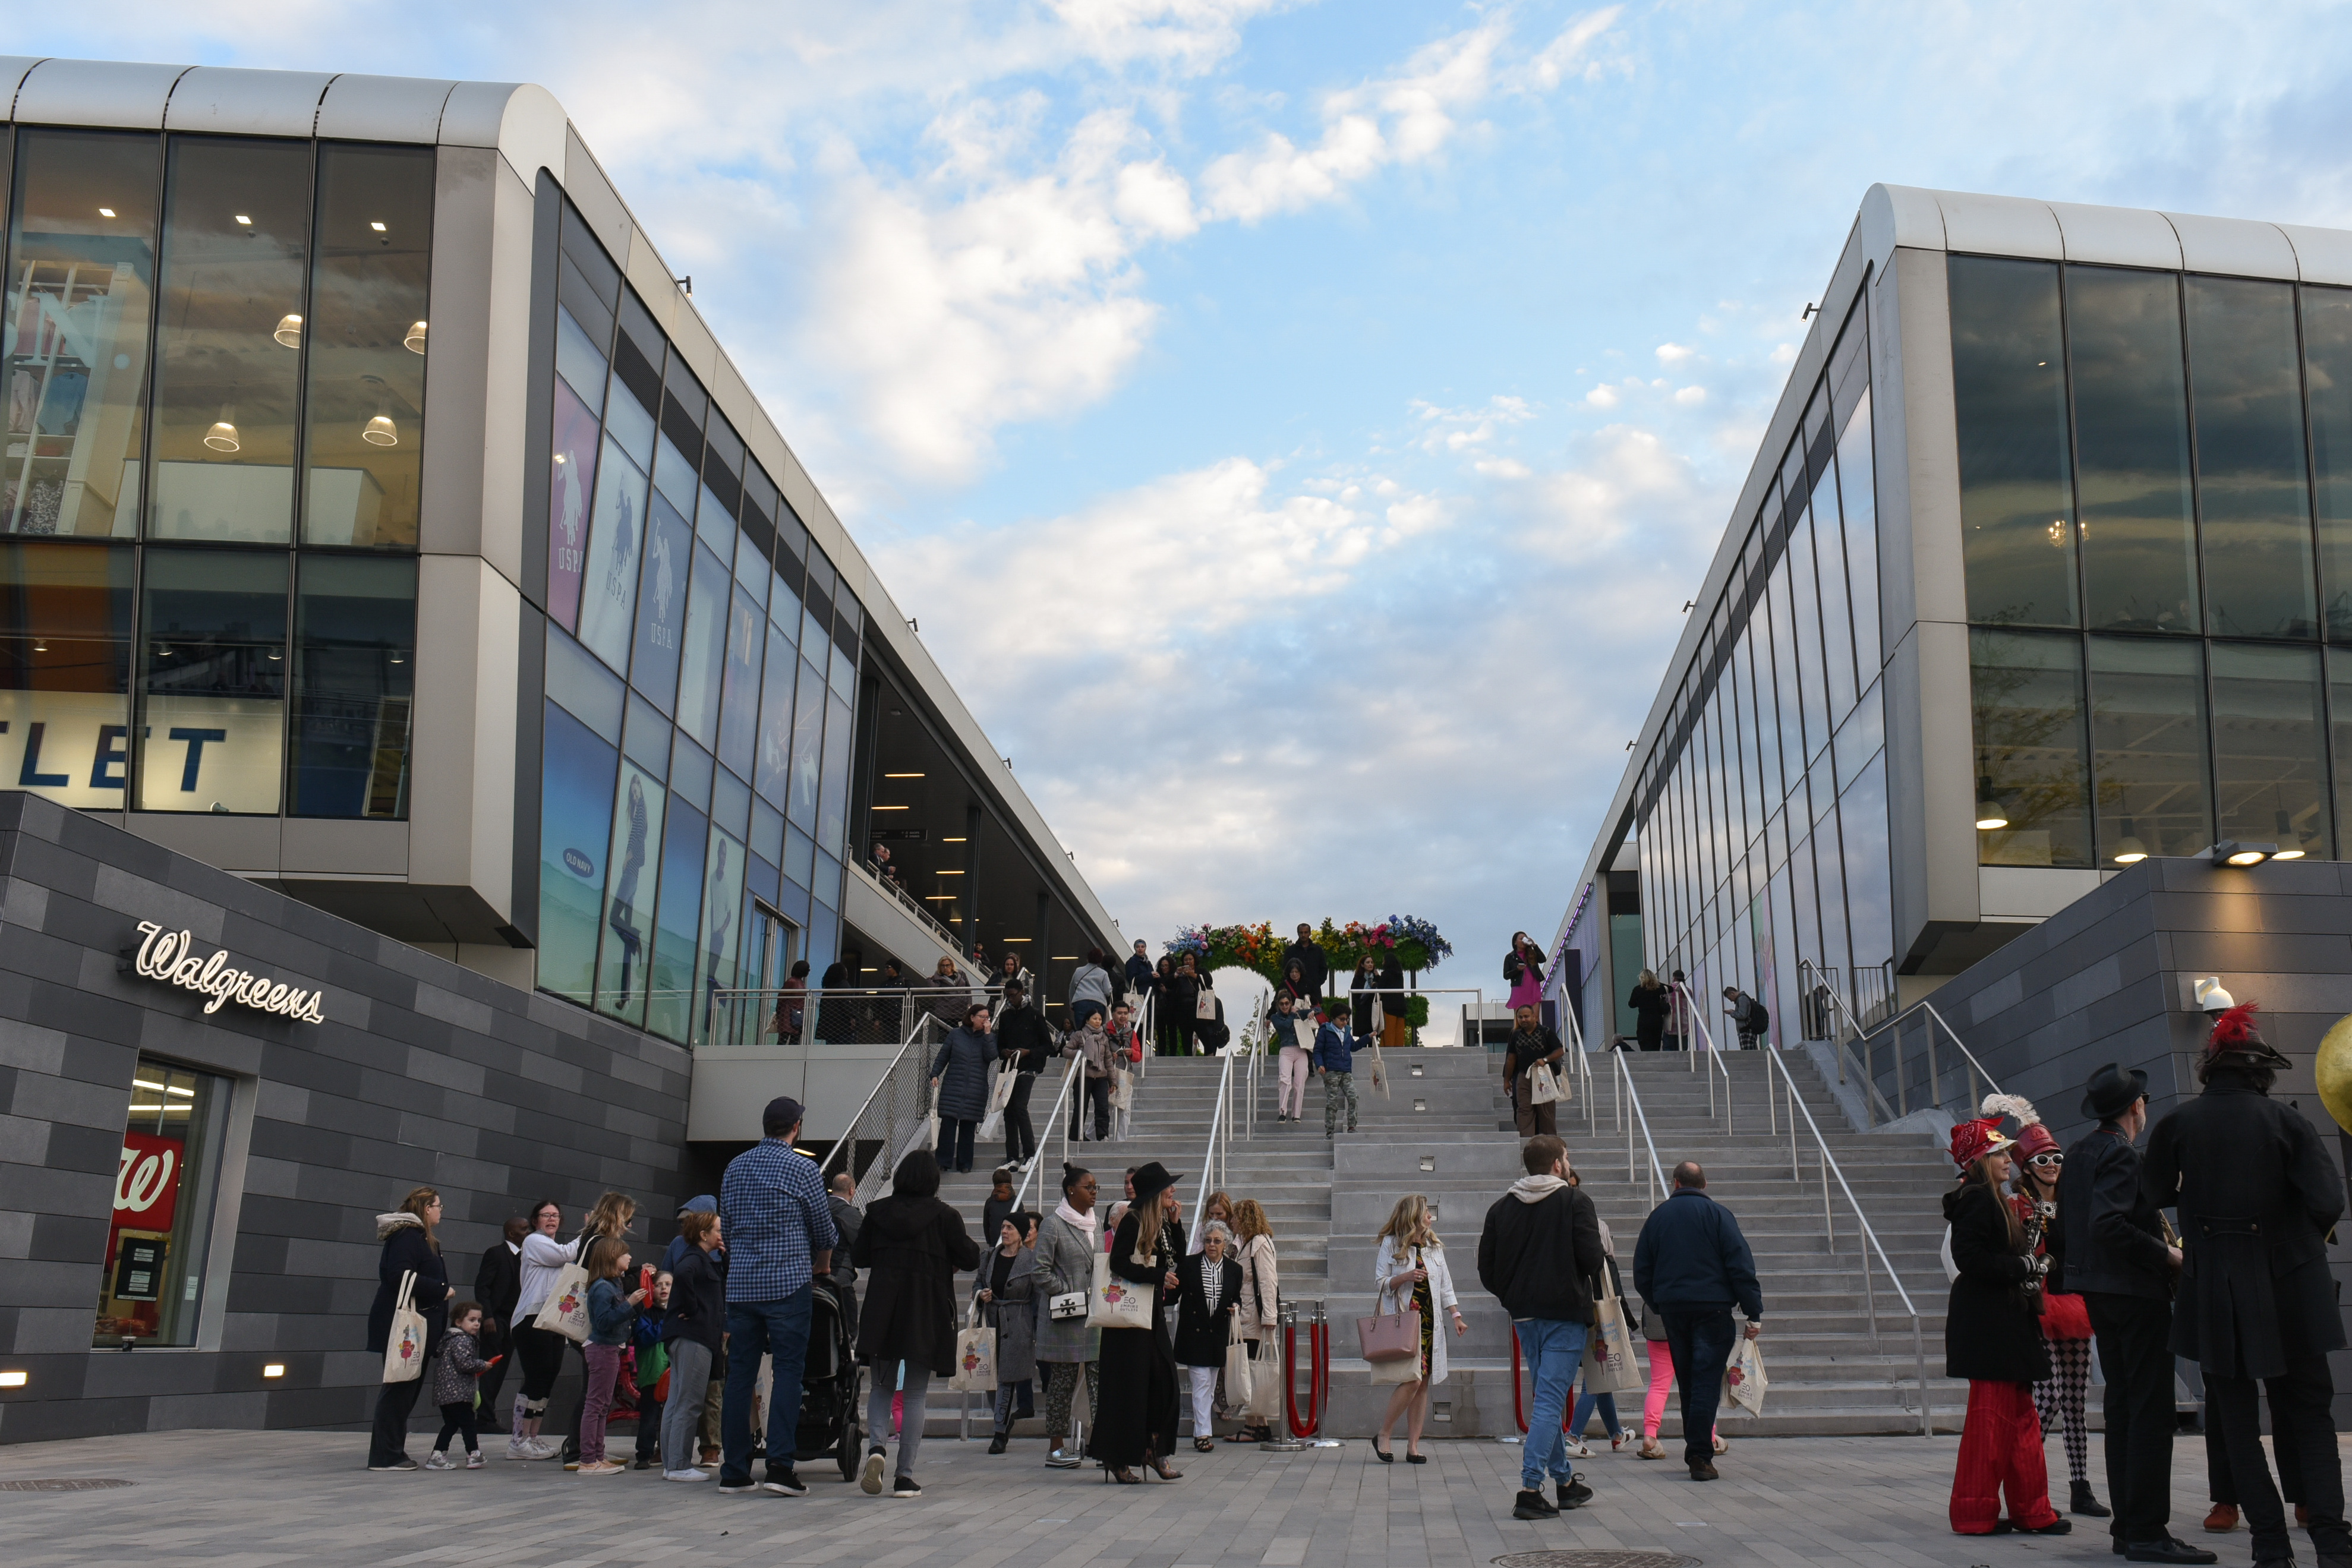 Check Out More About Empire Outlets: NYC's First Ever Outlet Destination